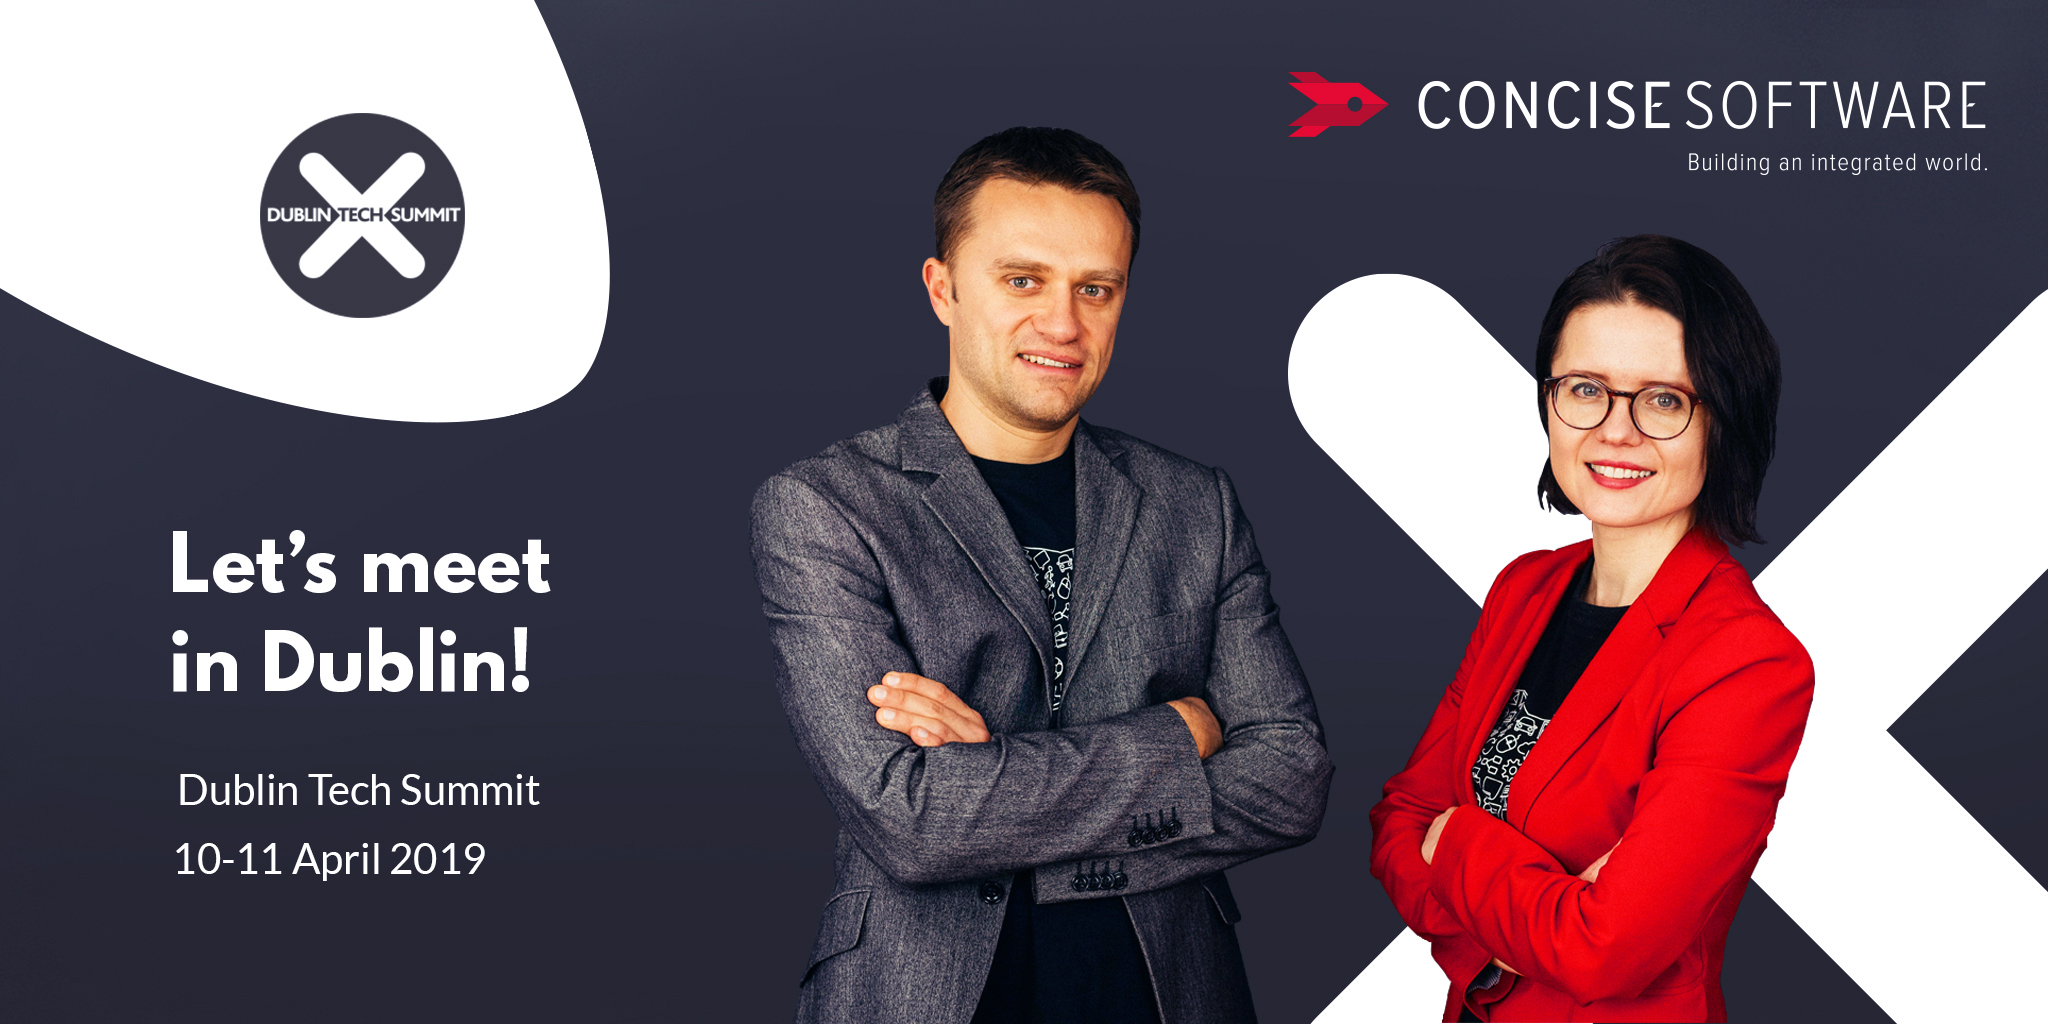 Concise Software at the Dublin Tech Summit 2019